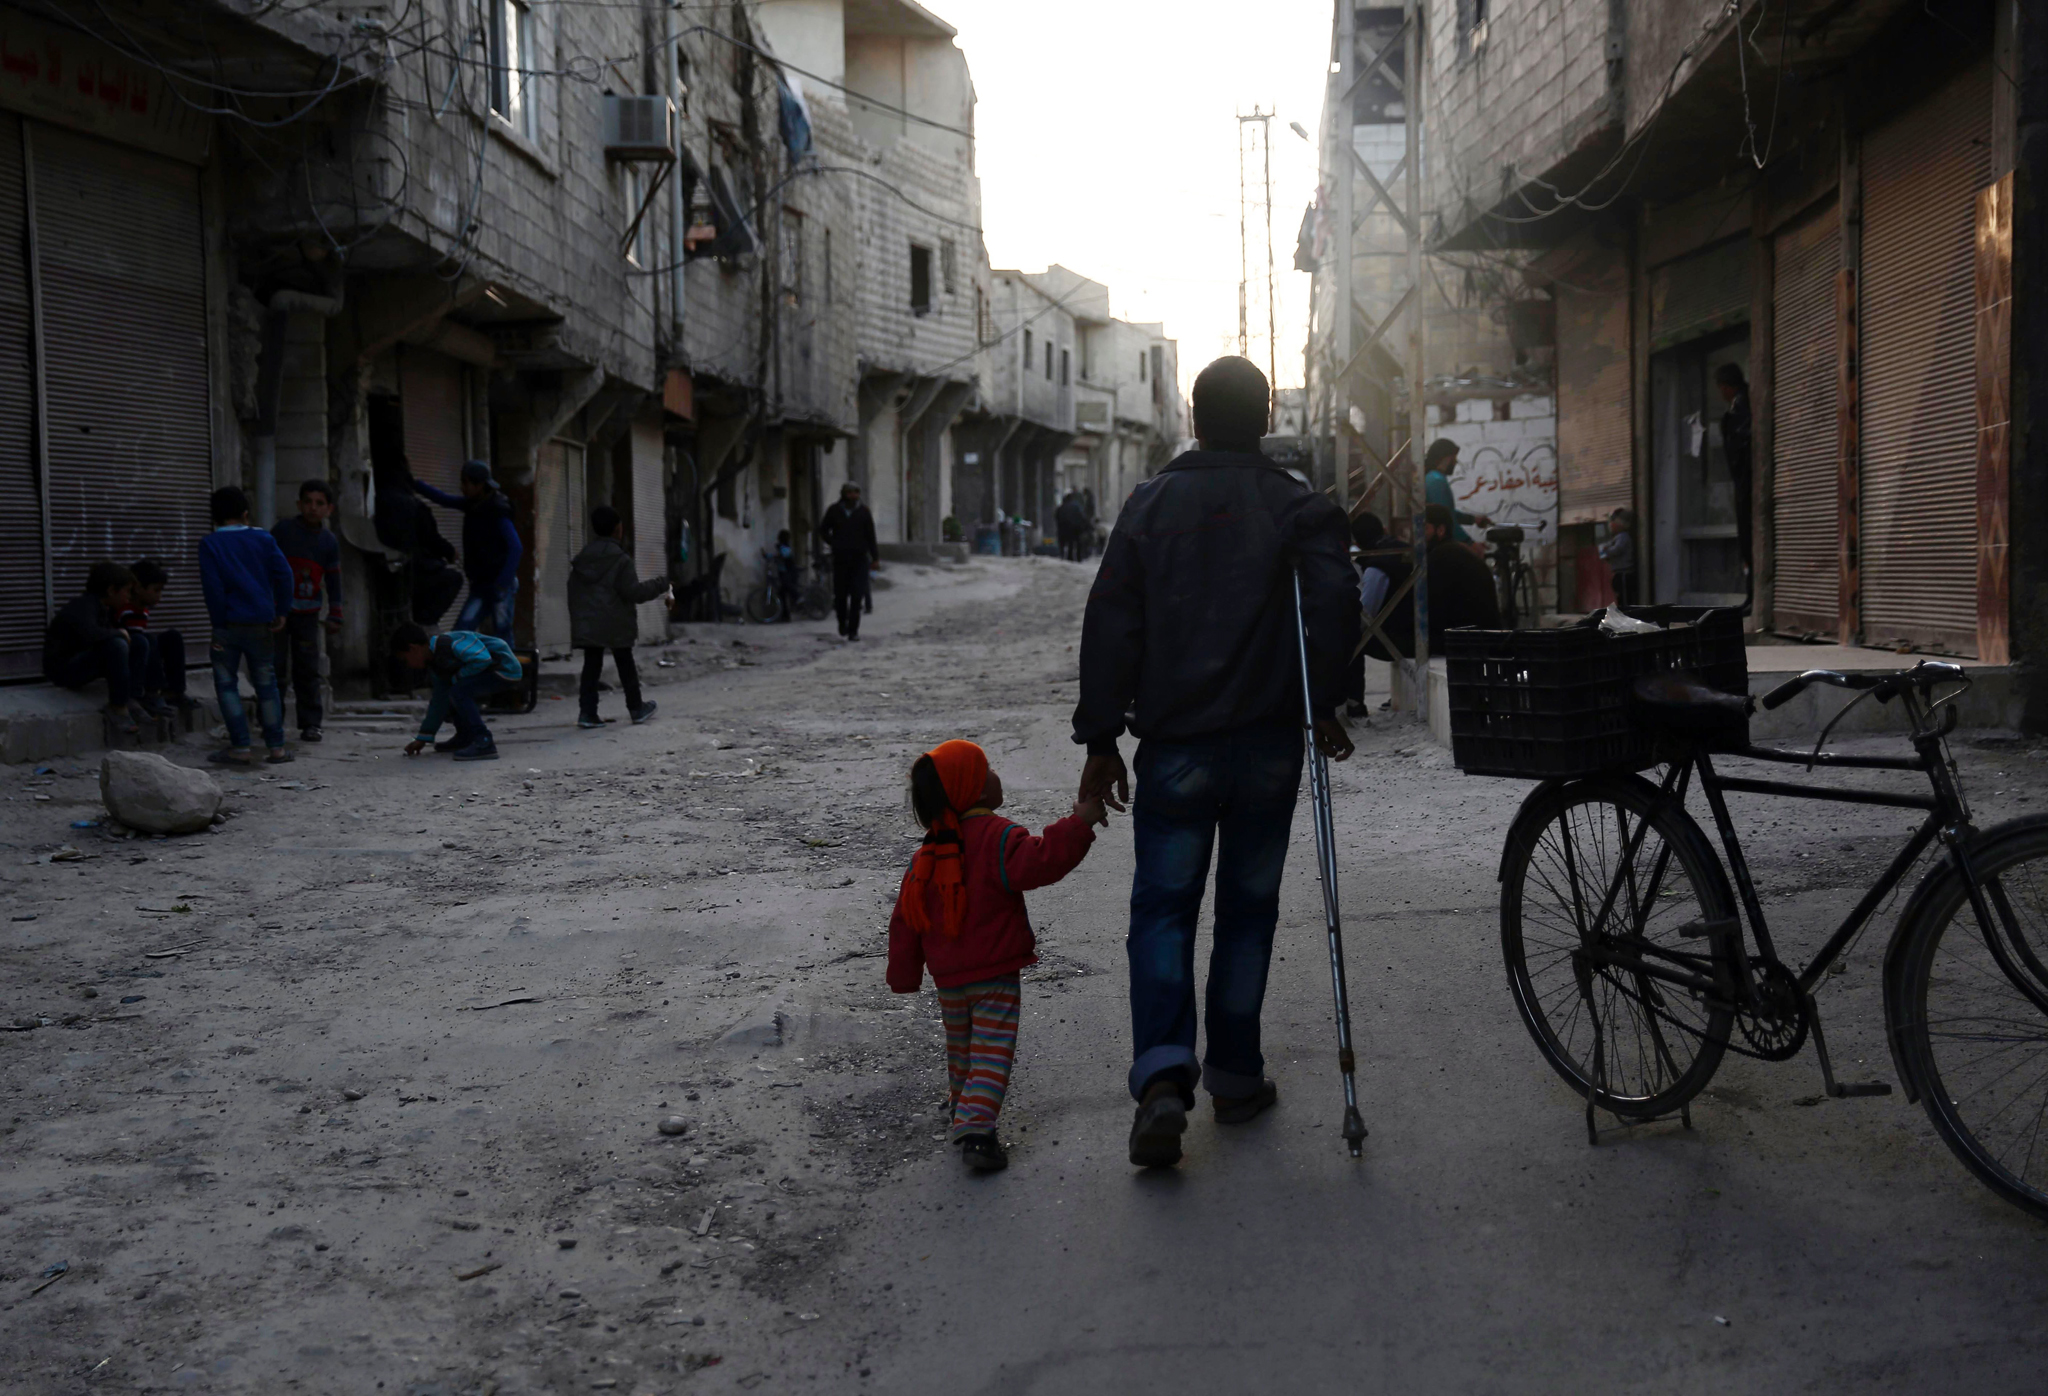 TOPSHOT - An injured Syrian man walks ho...TOPSHOT - An injured Syrian man walks holding his daughter's hand in Tishreen, a northern suburb of the capital Damascus, on March 22, 2016.  / AFP PHOTO / Sameer Al-DoumySAMEER AL-DOUMY/AFP/Getty Images